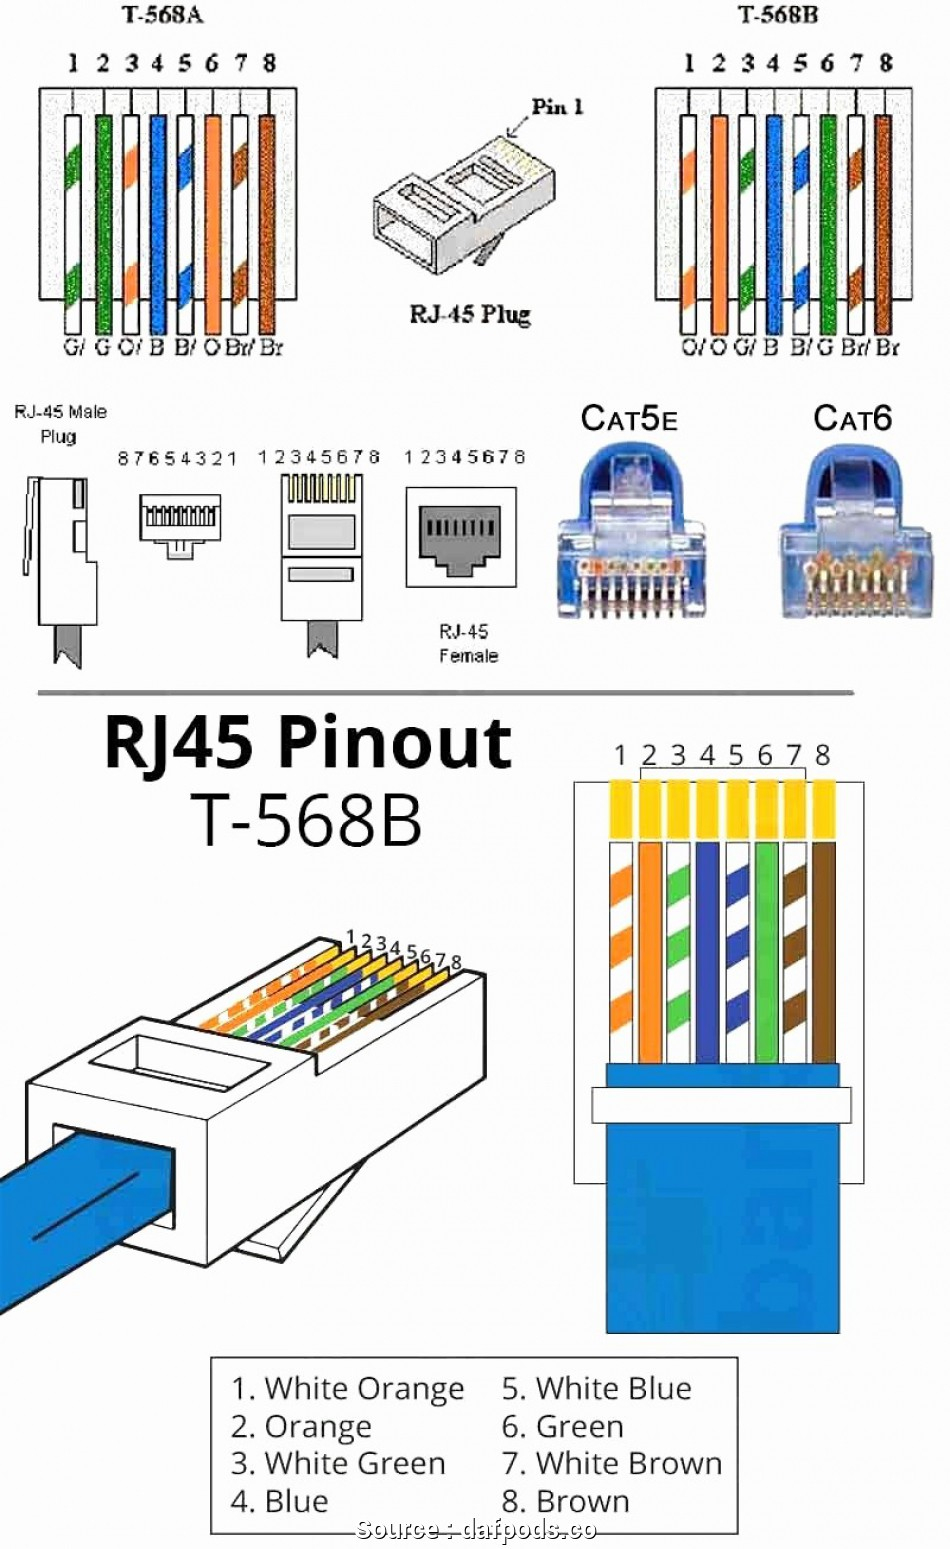 Cat 6 Schematic | Wiring Diagram - Cat 3 Wiring Diagram